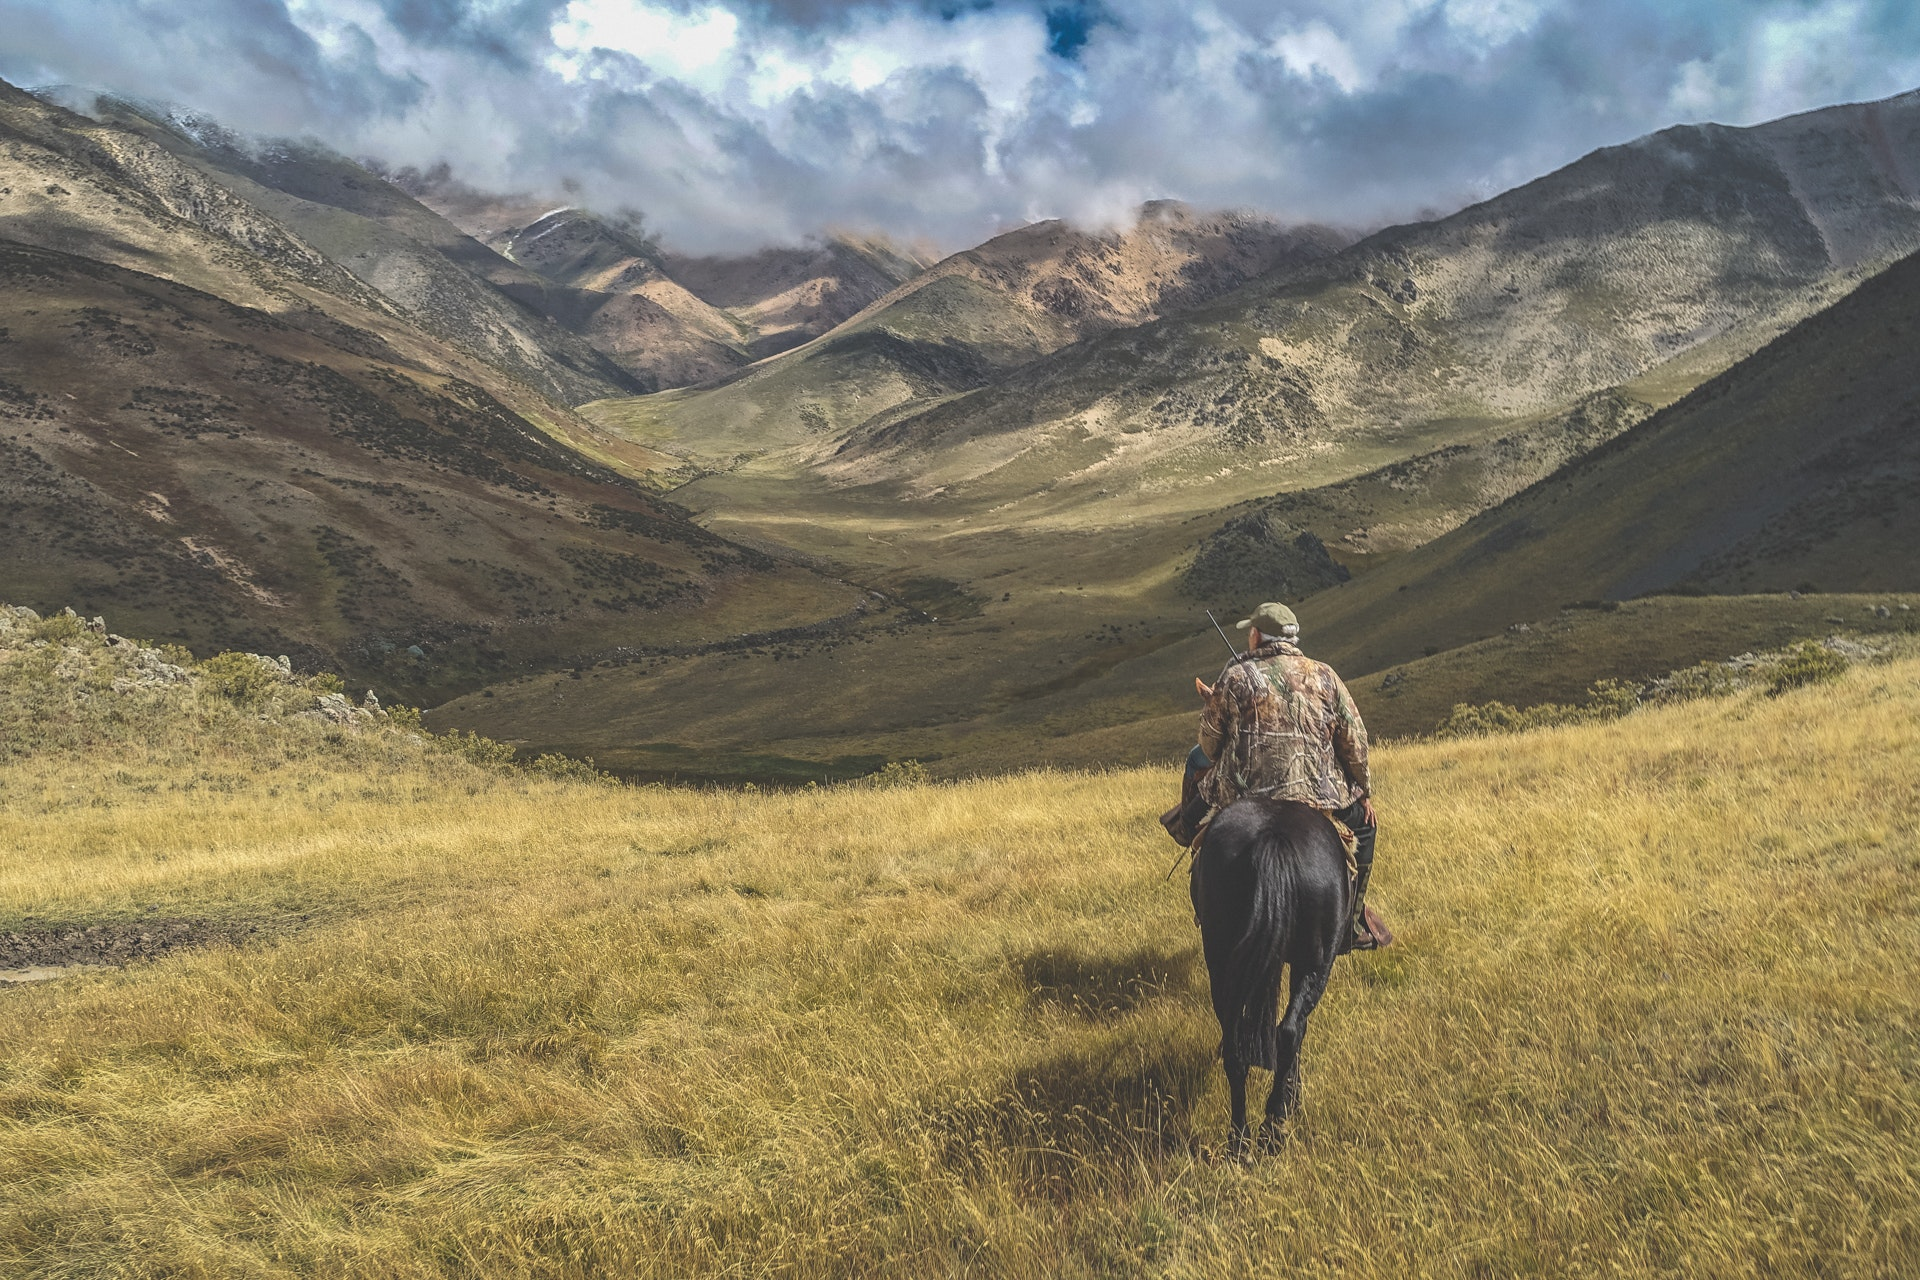 Man riding horse on grass near mountains photo